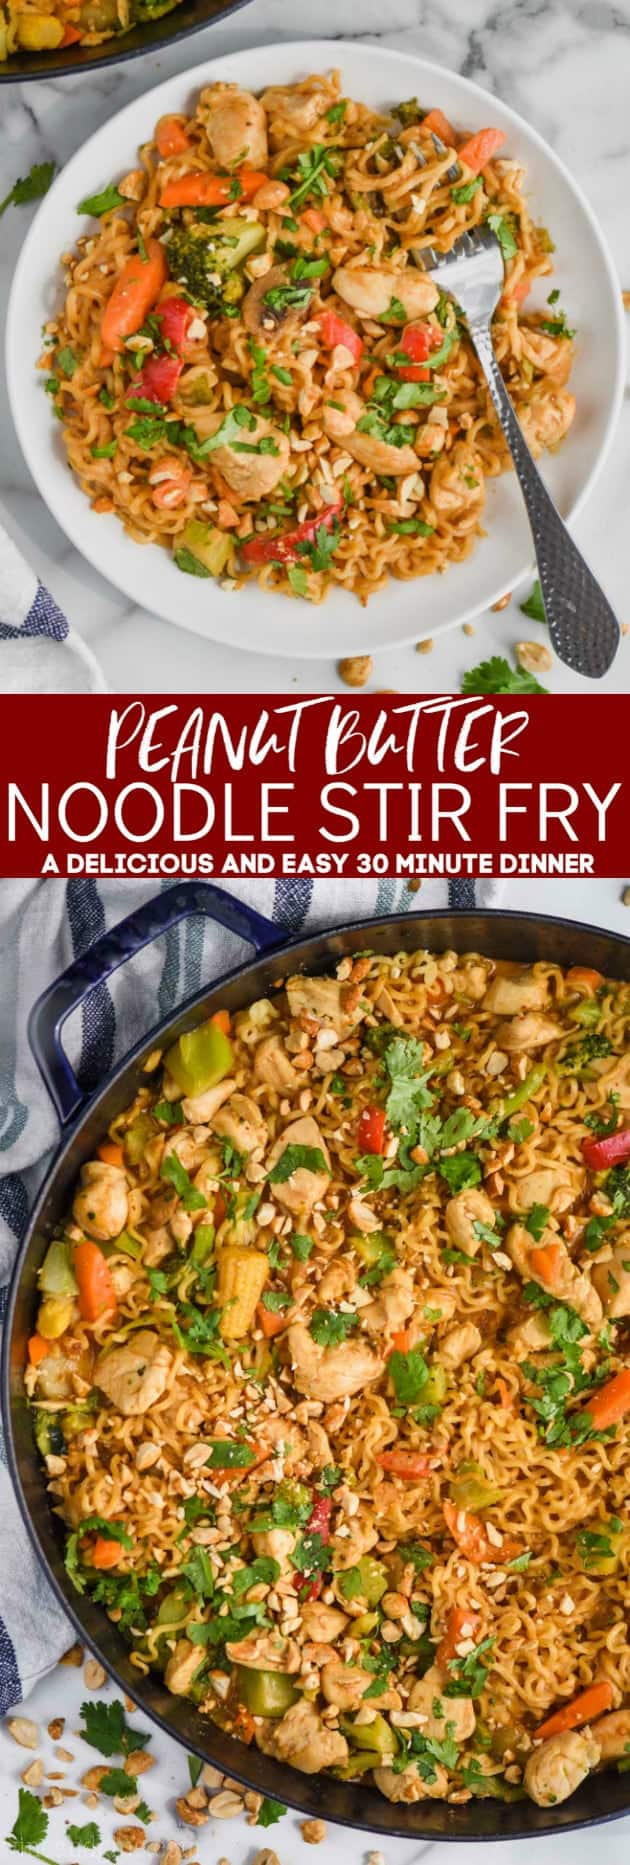 collage of peanut butter noodle stir fry